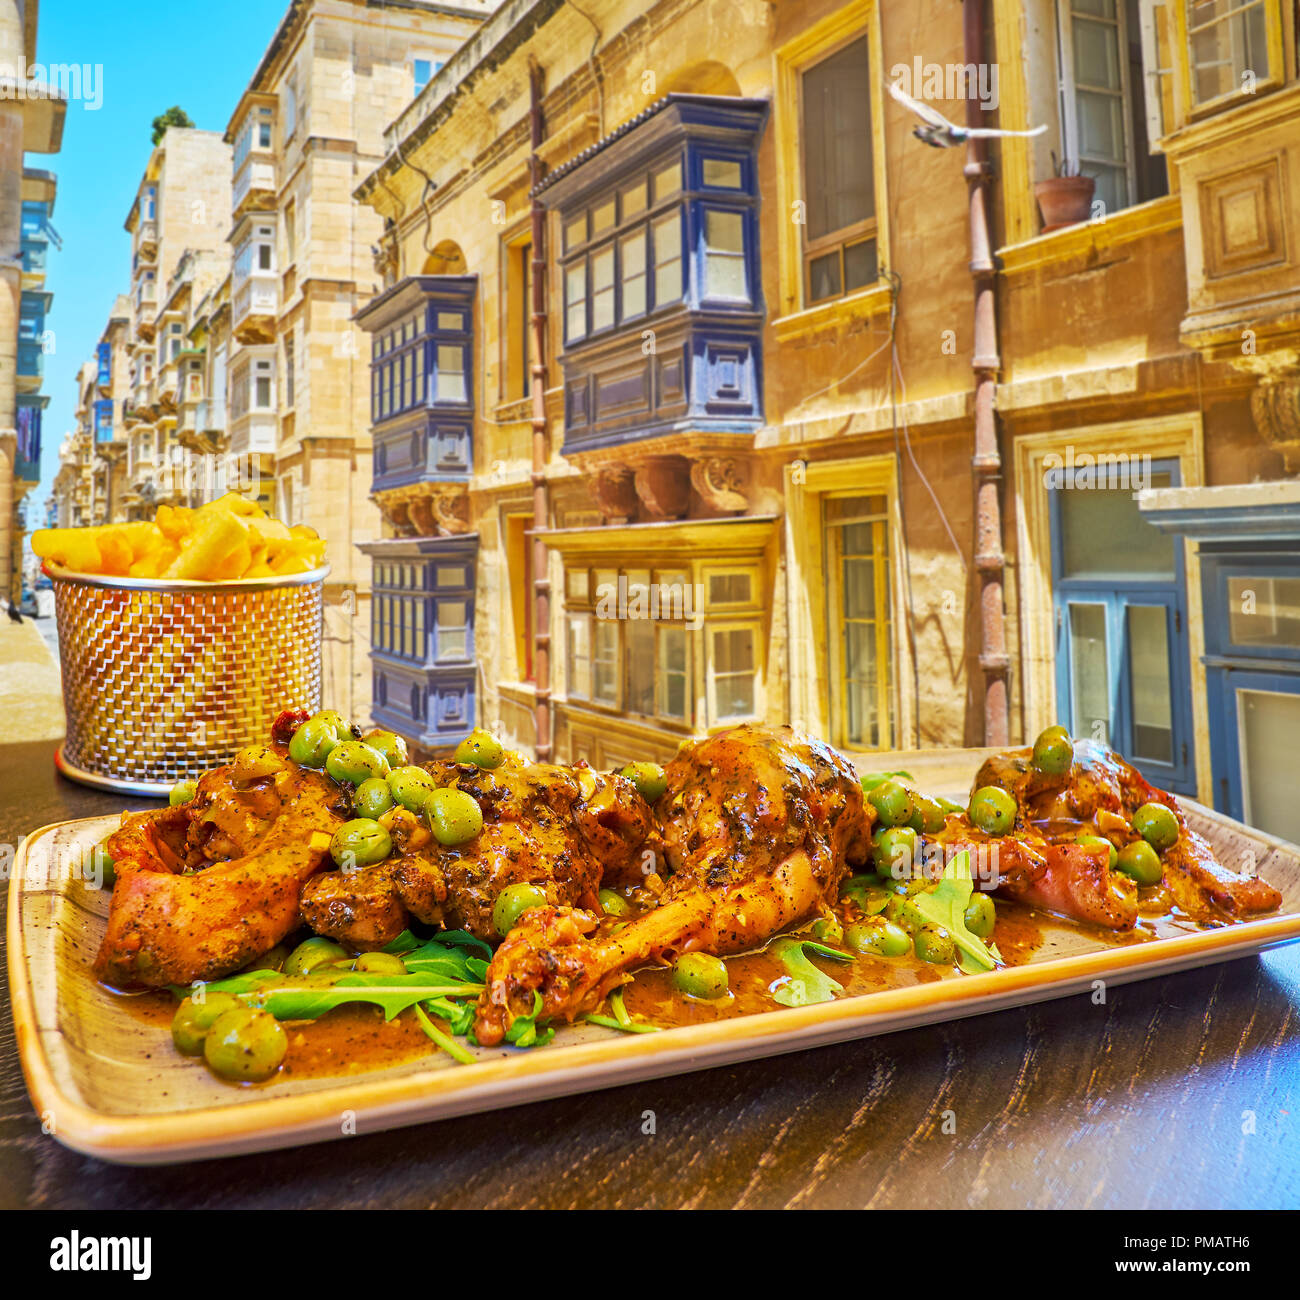 Enjoy the rabbit, stewed in red wine with beans, herbs and spices  in the popular restaurant of Strait street, Valletta, Malta. - Stock Image